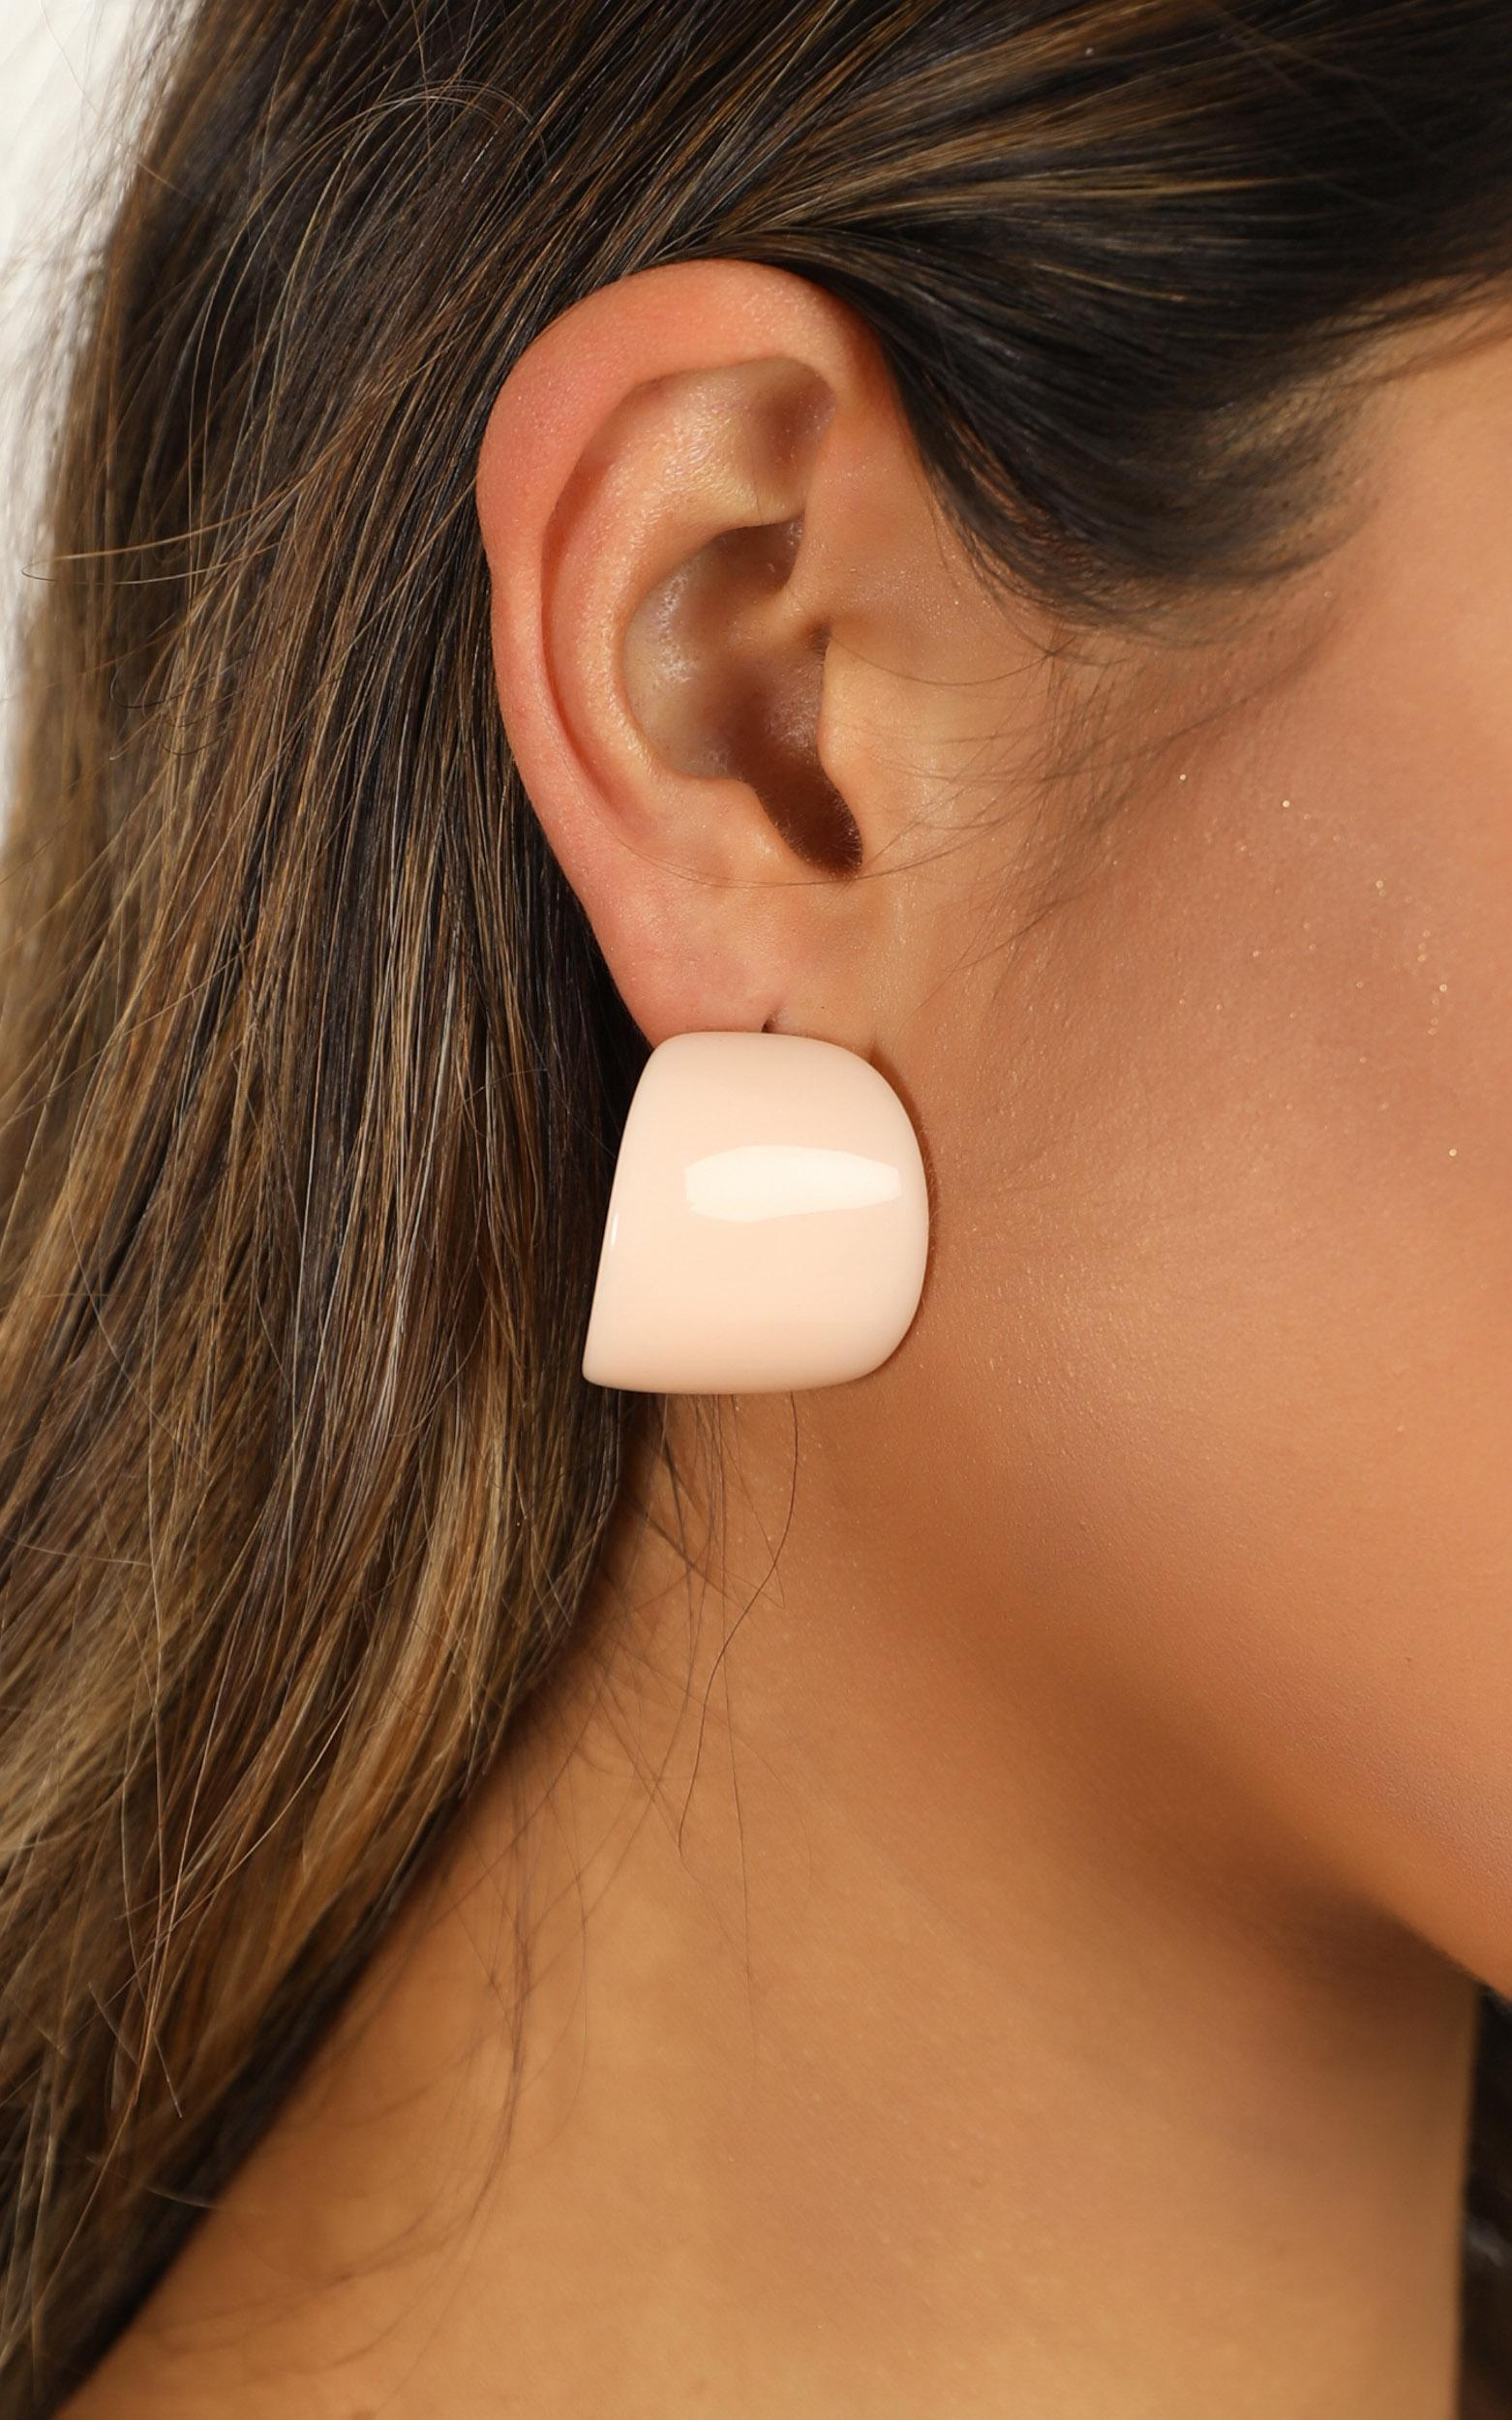 All Night Long Earrings In Peach, , hi-res image number null